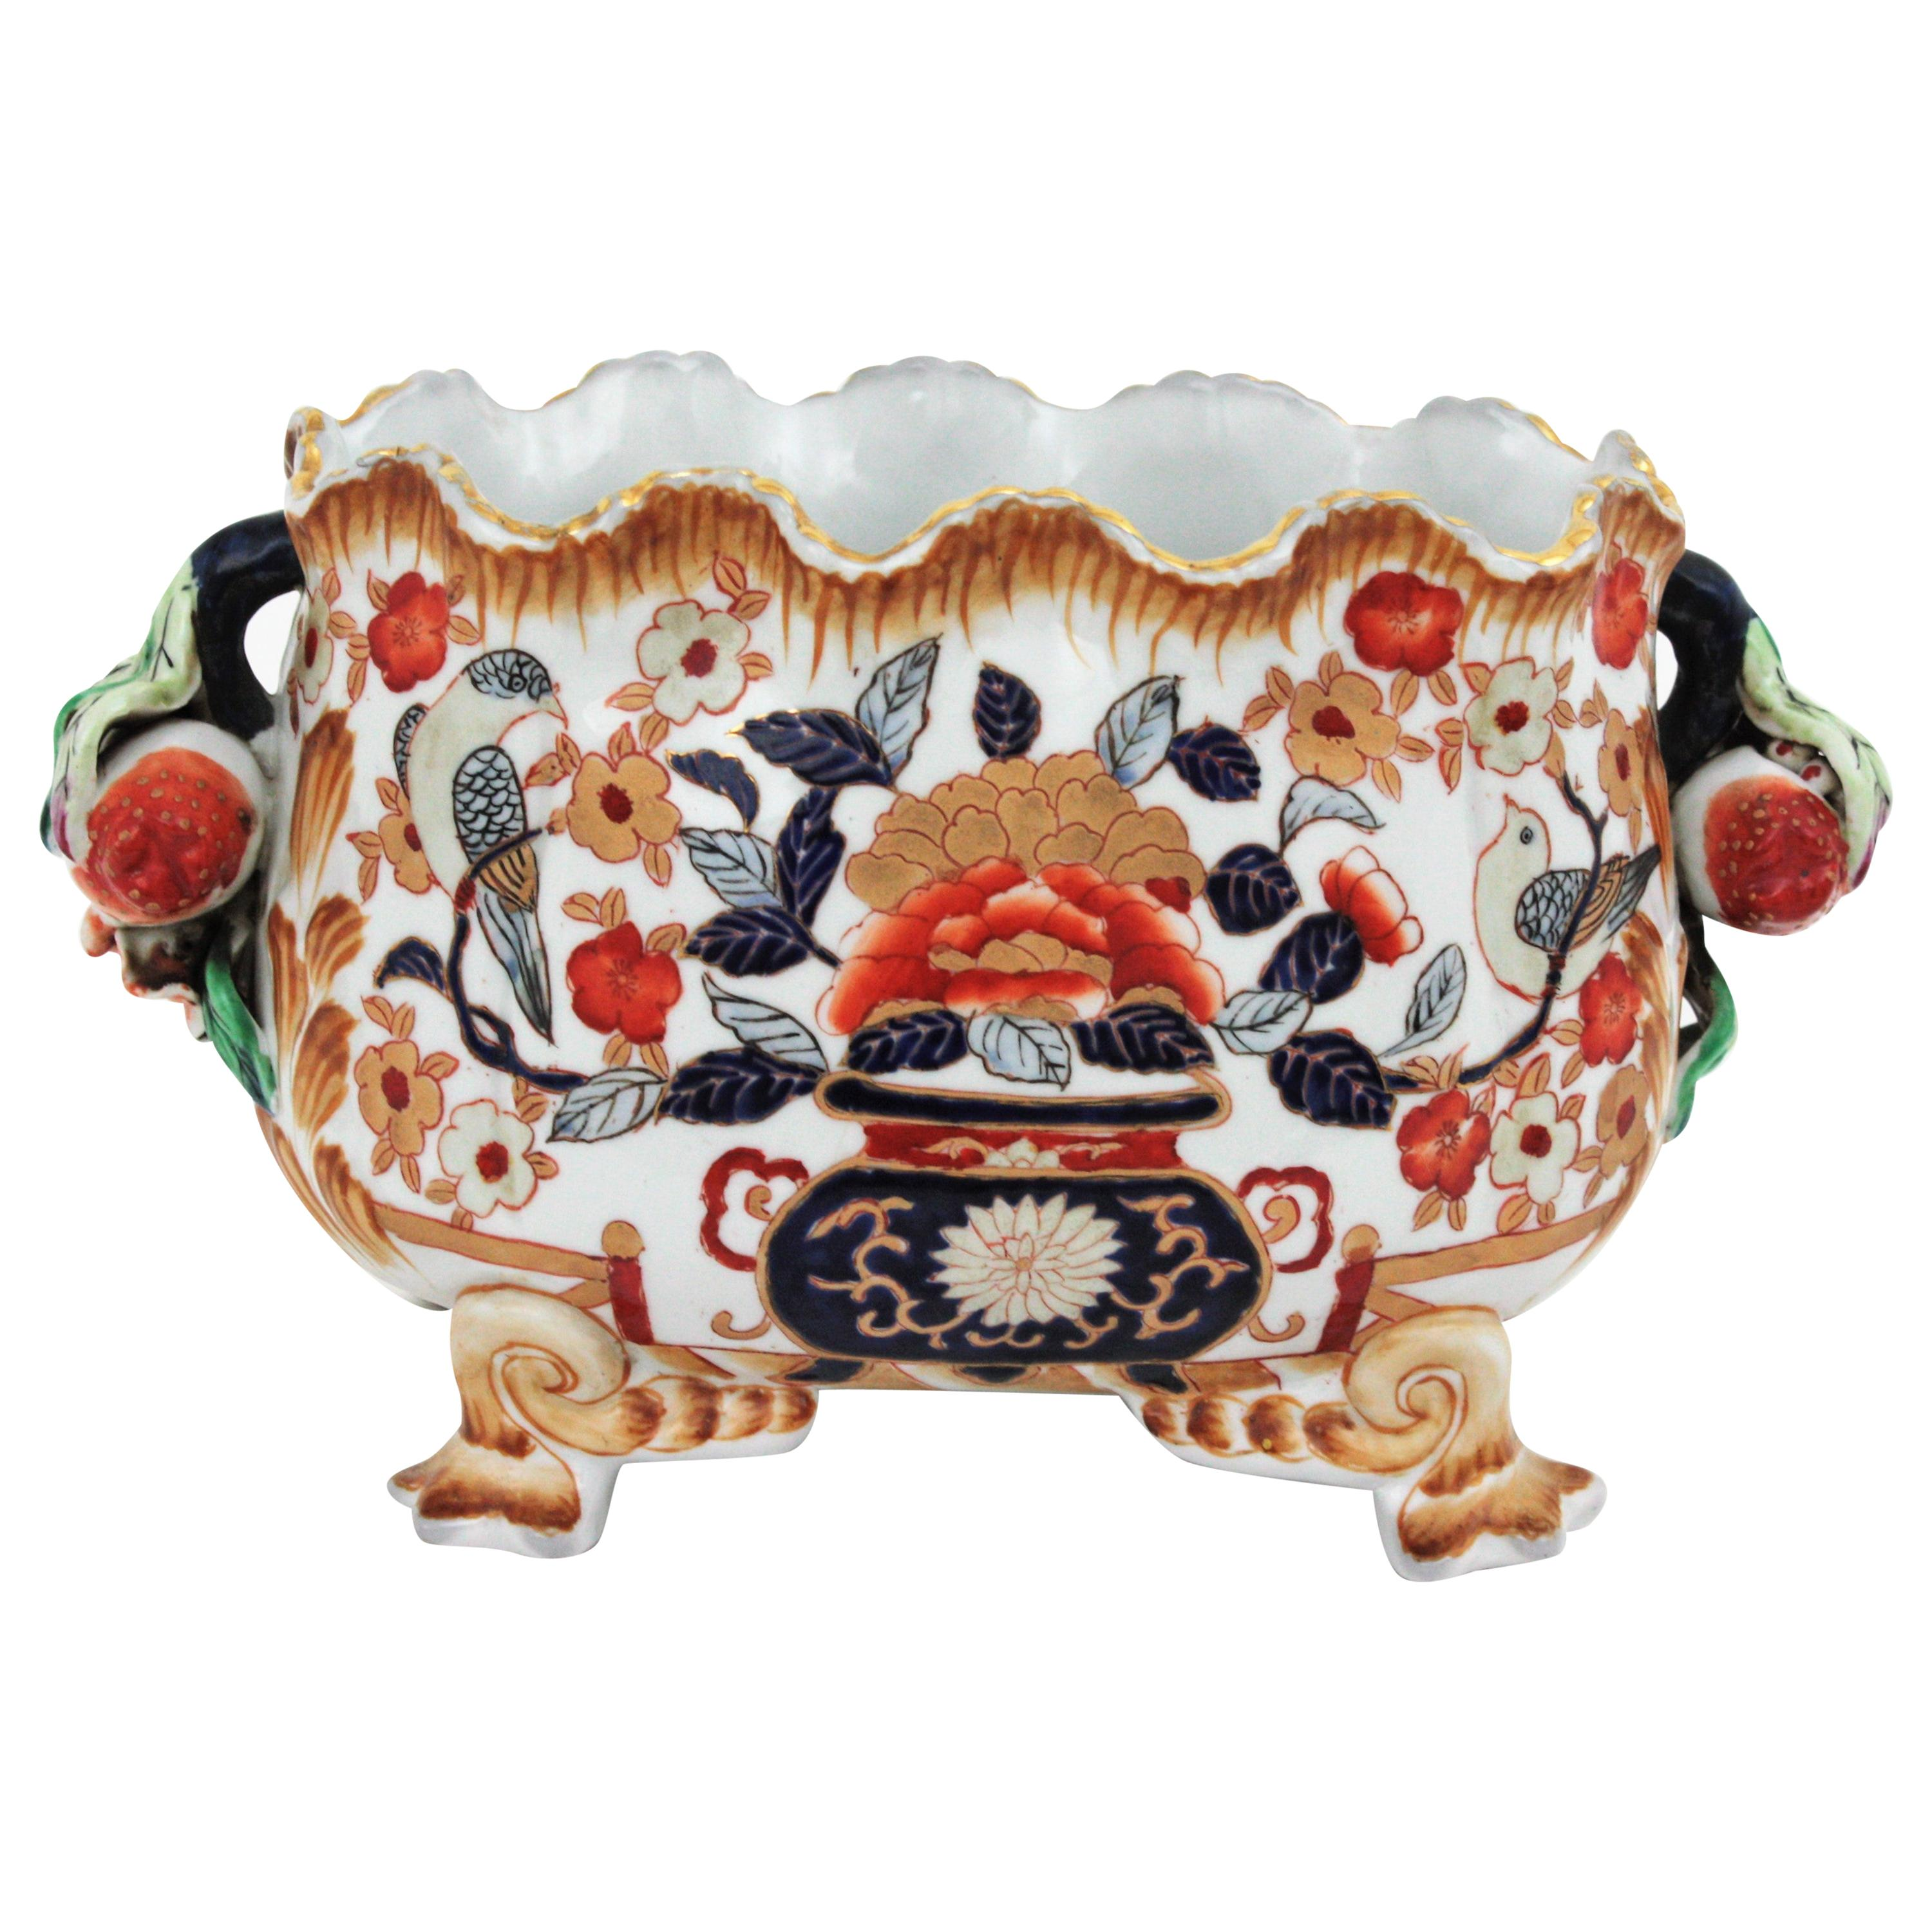 Hand Painted Chinese Porcelain Scalloped Centerpiece Footed Bowl, 1950s